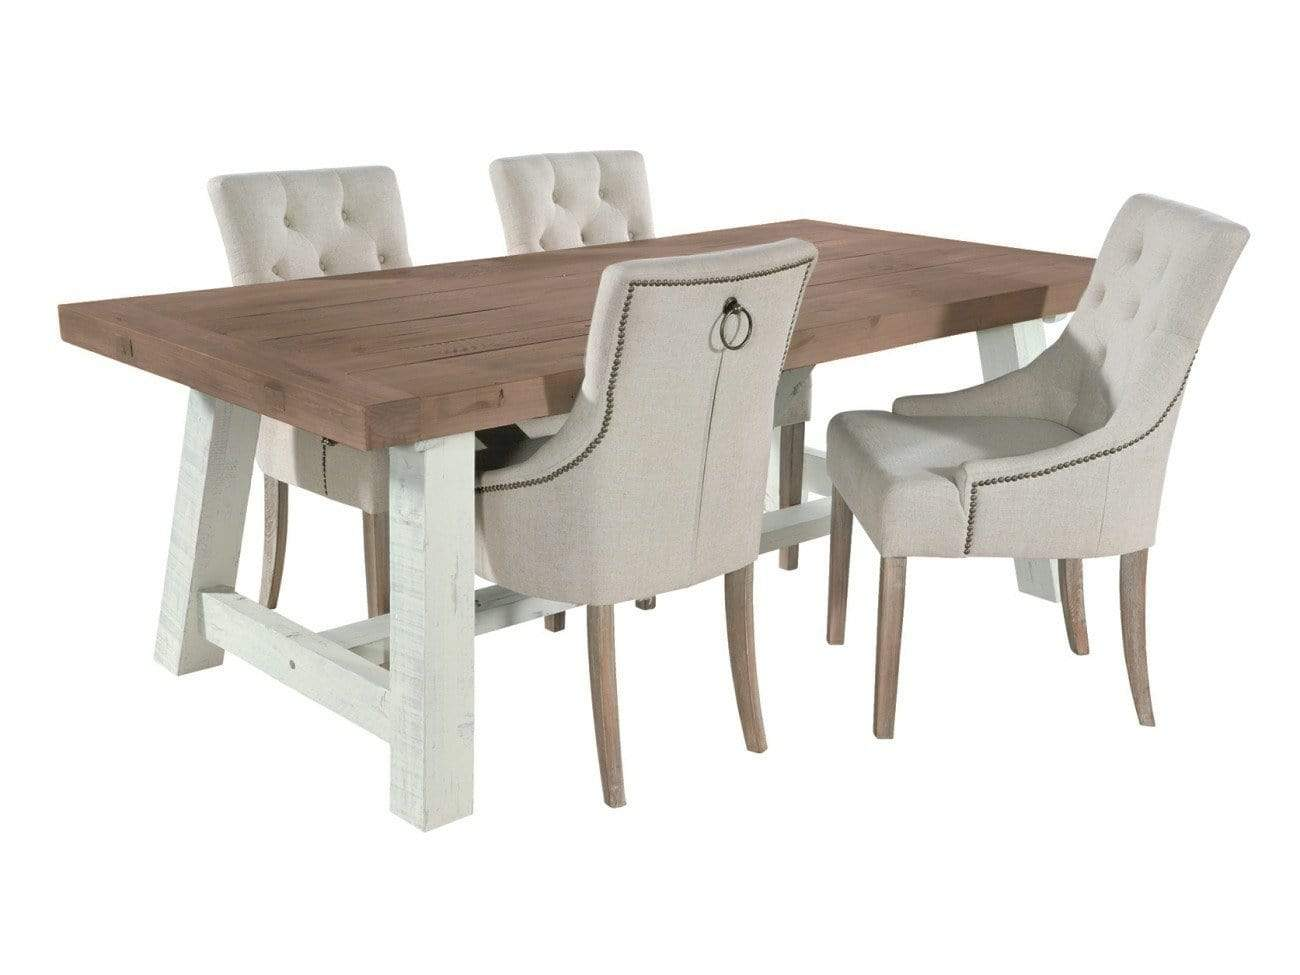 Rustic Extending Dining Table Set Greenway Furniture